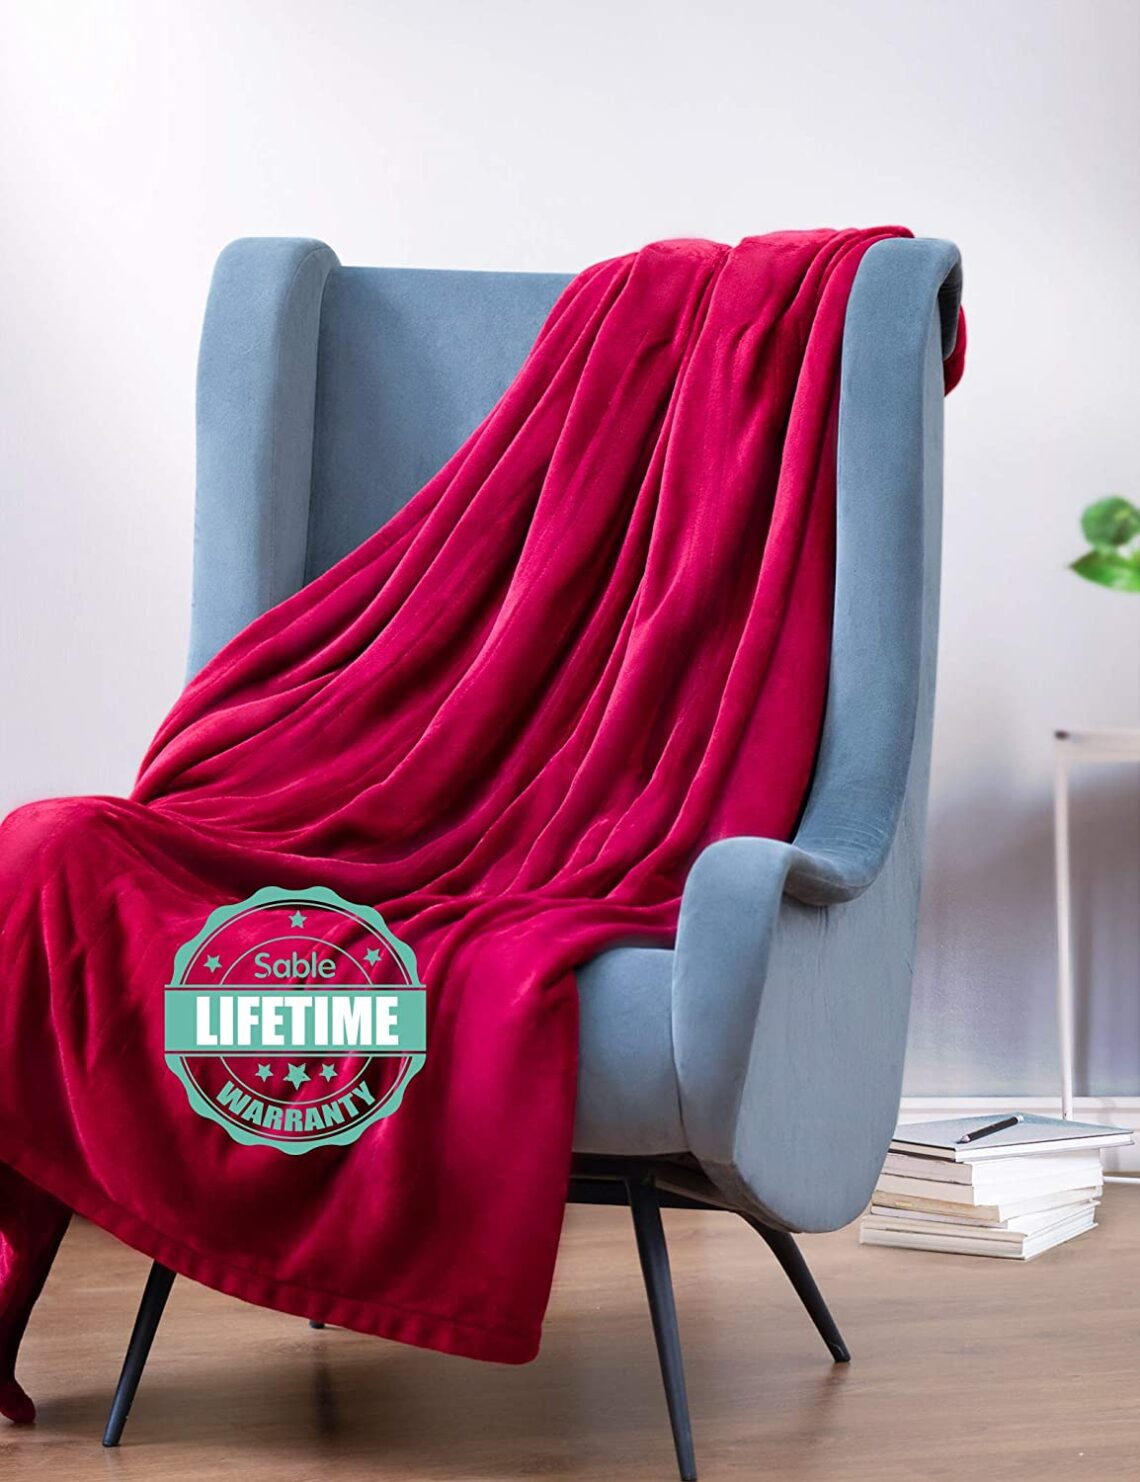 """Sable Electric Throw, 50"""" x 60"""" Full Body Warming Blanket Twin, Double-Layer Flanne Fast 10 Levels, Over-Heat Protect, Machine Washable, For Home..."""